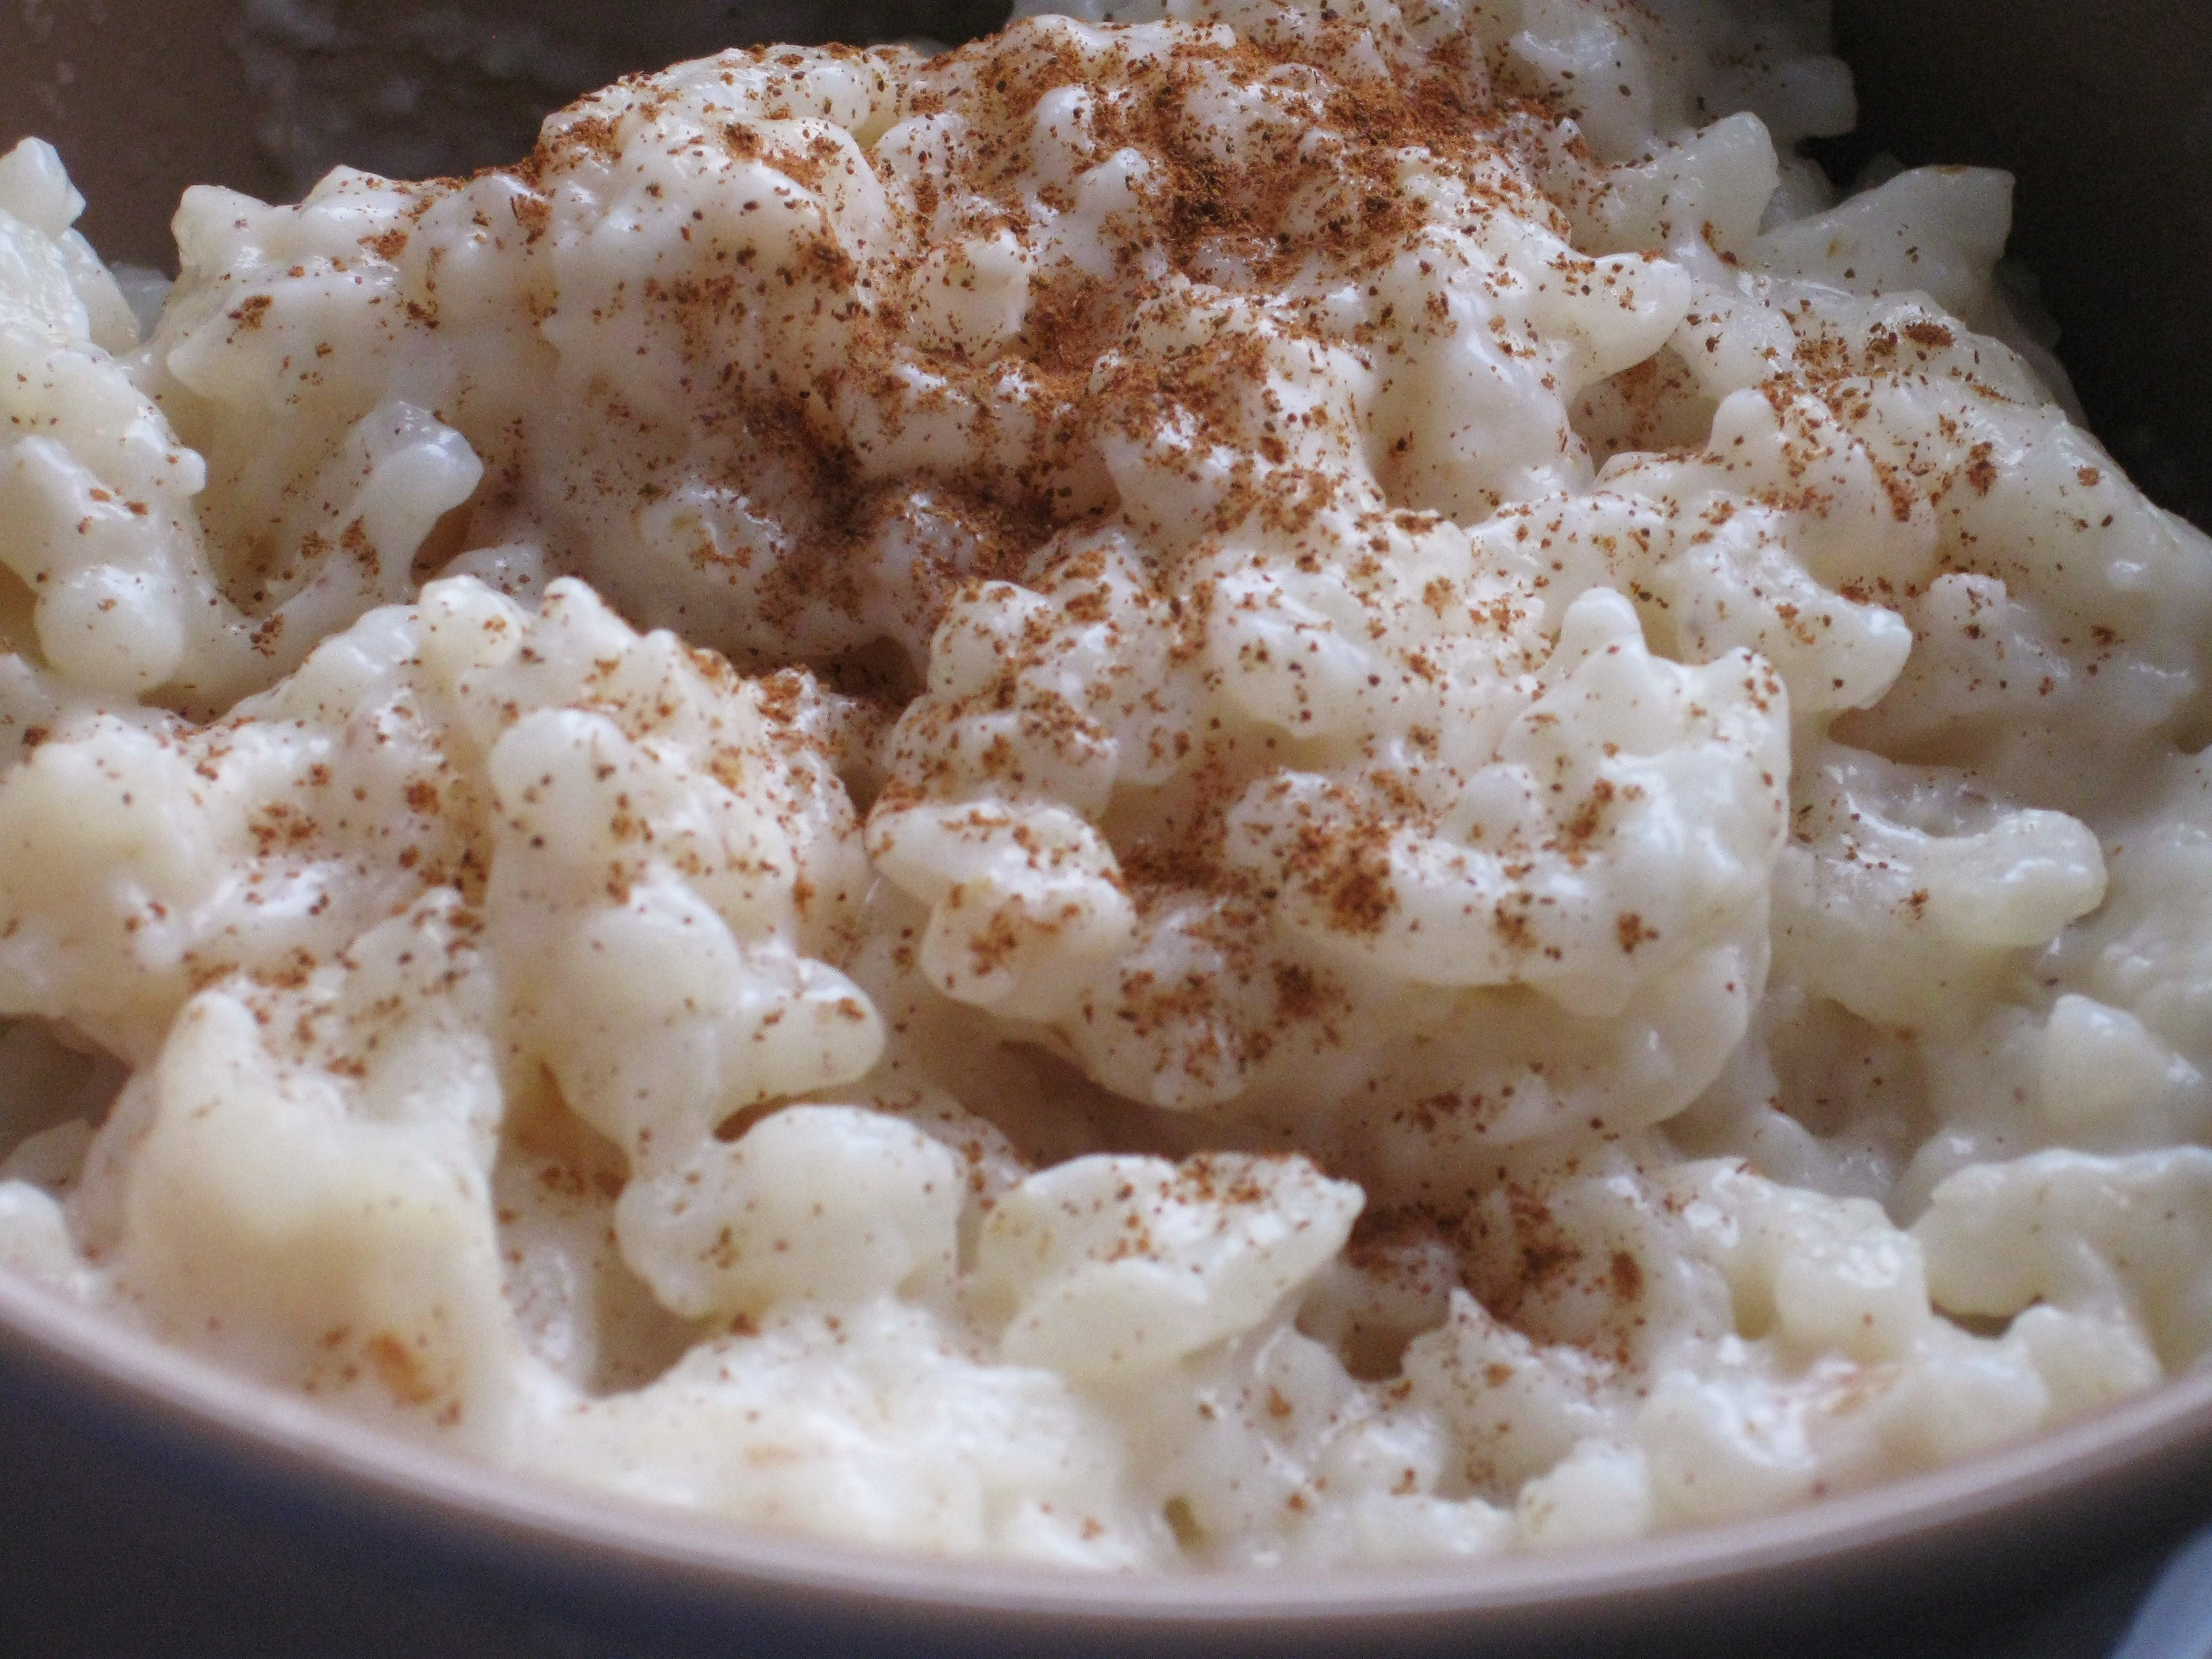 ... rice pudding creamy rice pudding rice pudding sutlijash arborio rice